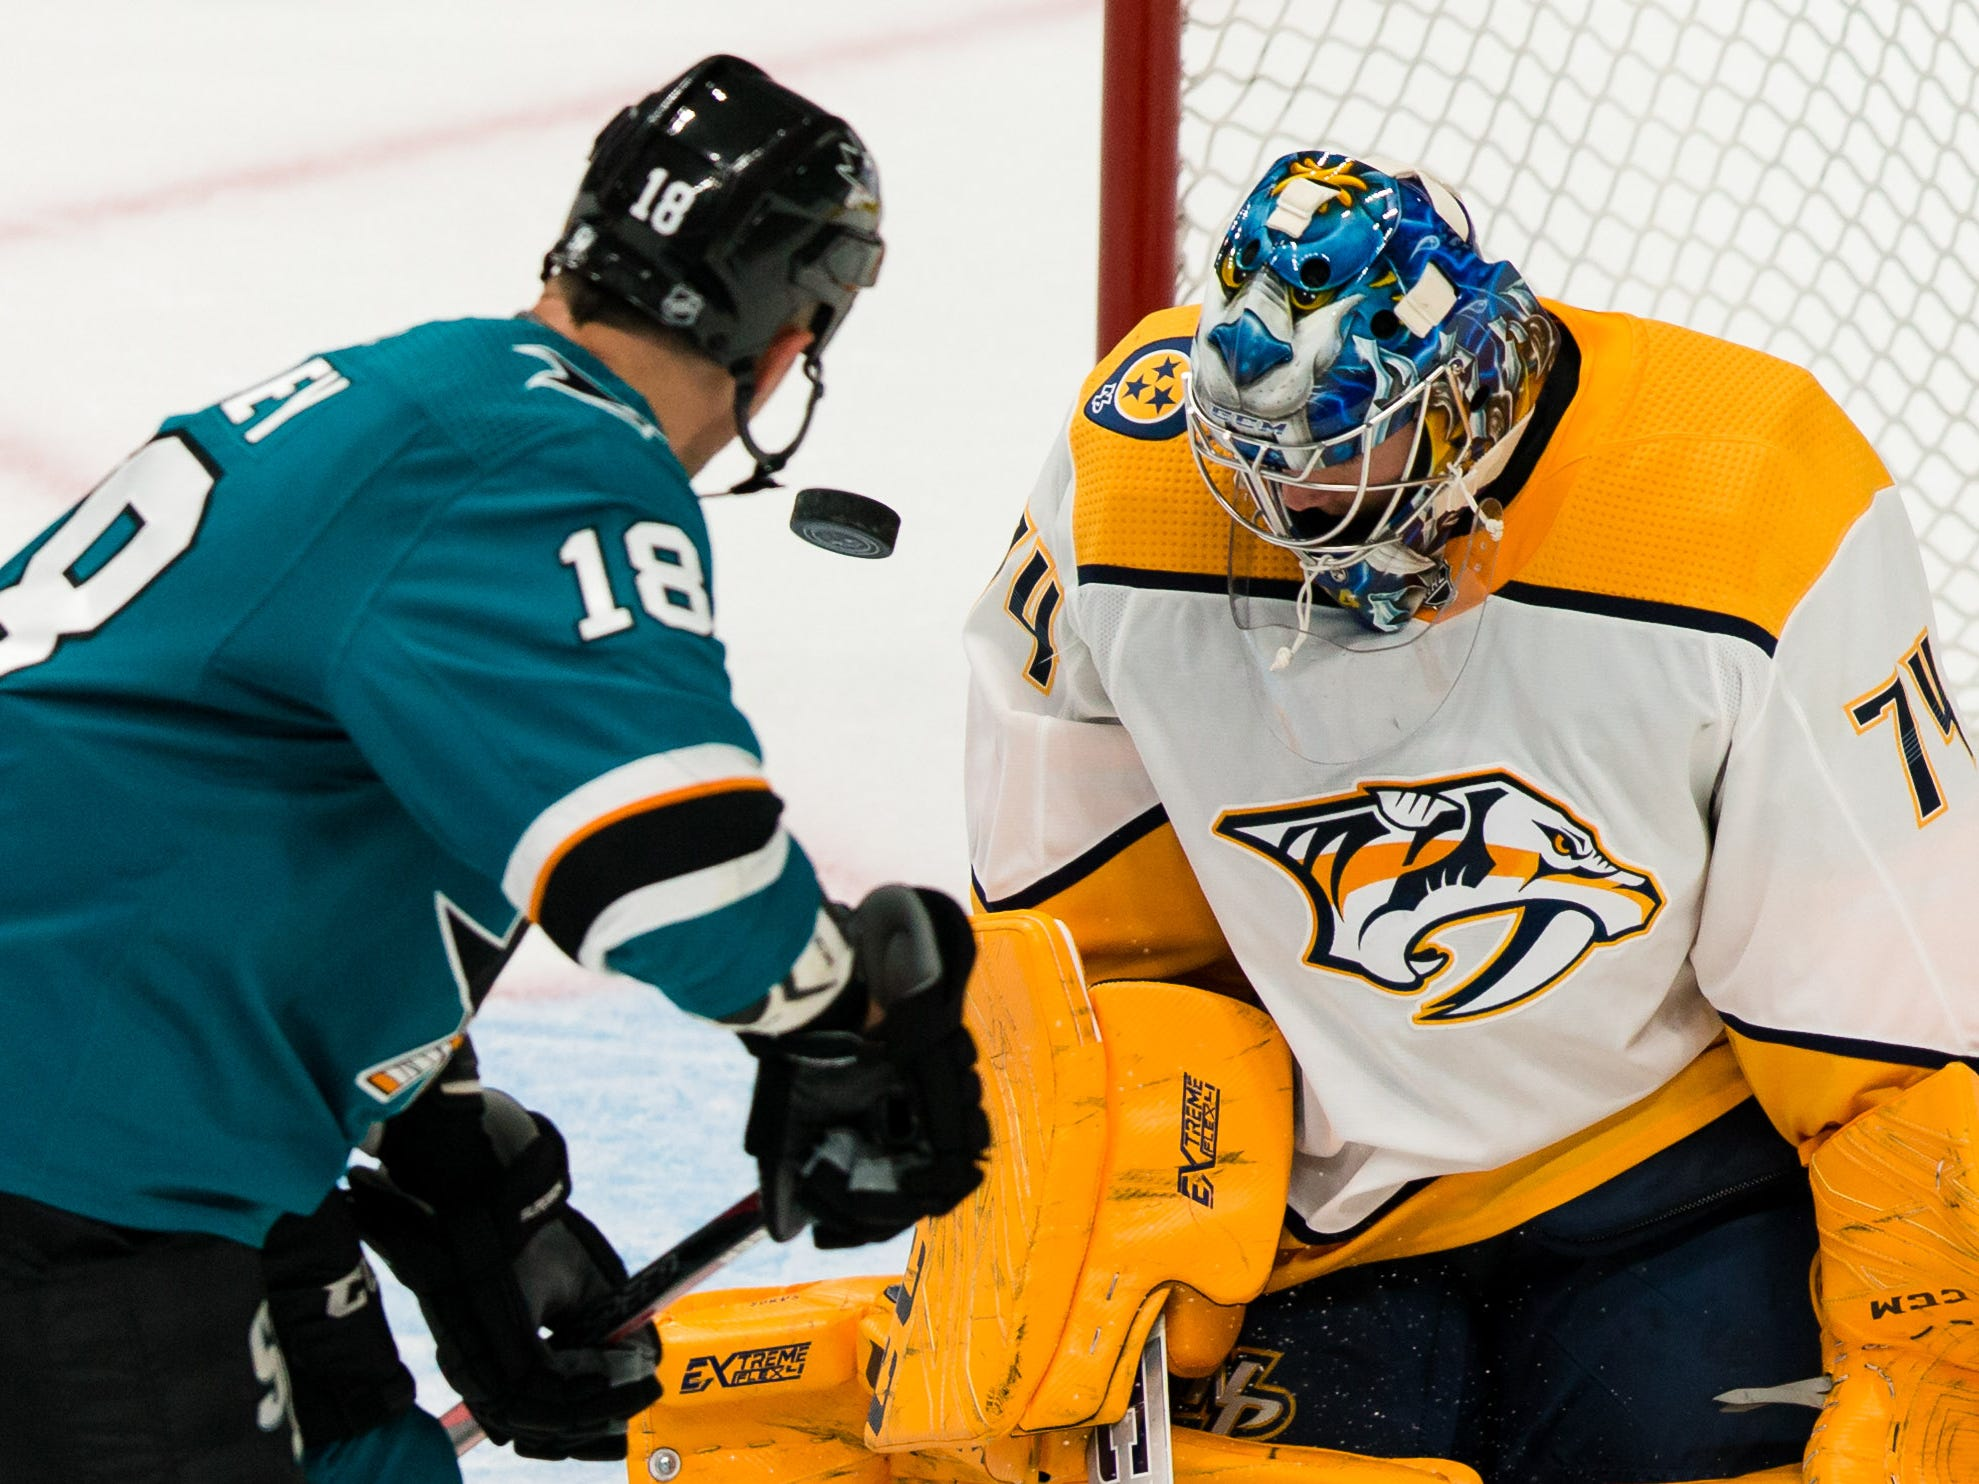 Mar 16, 2019: Predators 4, Sharks 2 -- Nashville Predators goaltender Juuse Saros (74) deflects a shot by San Jose Sharks center Micheal Haley (18) in the third period at SAP Center at San Jose.